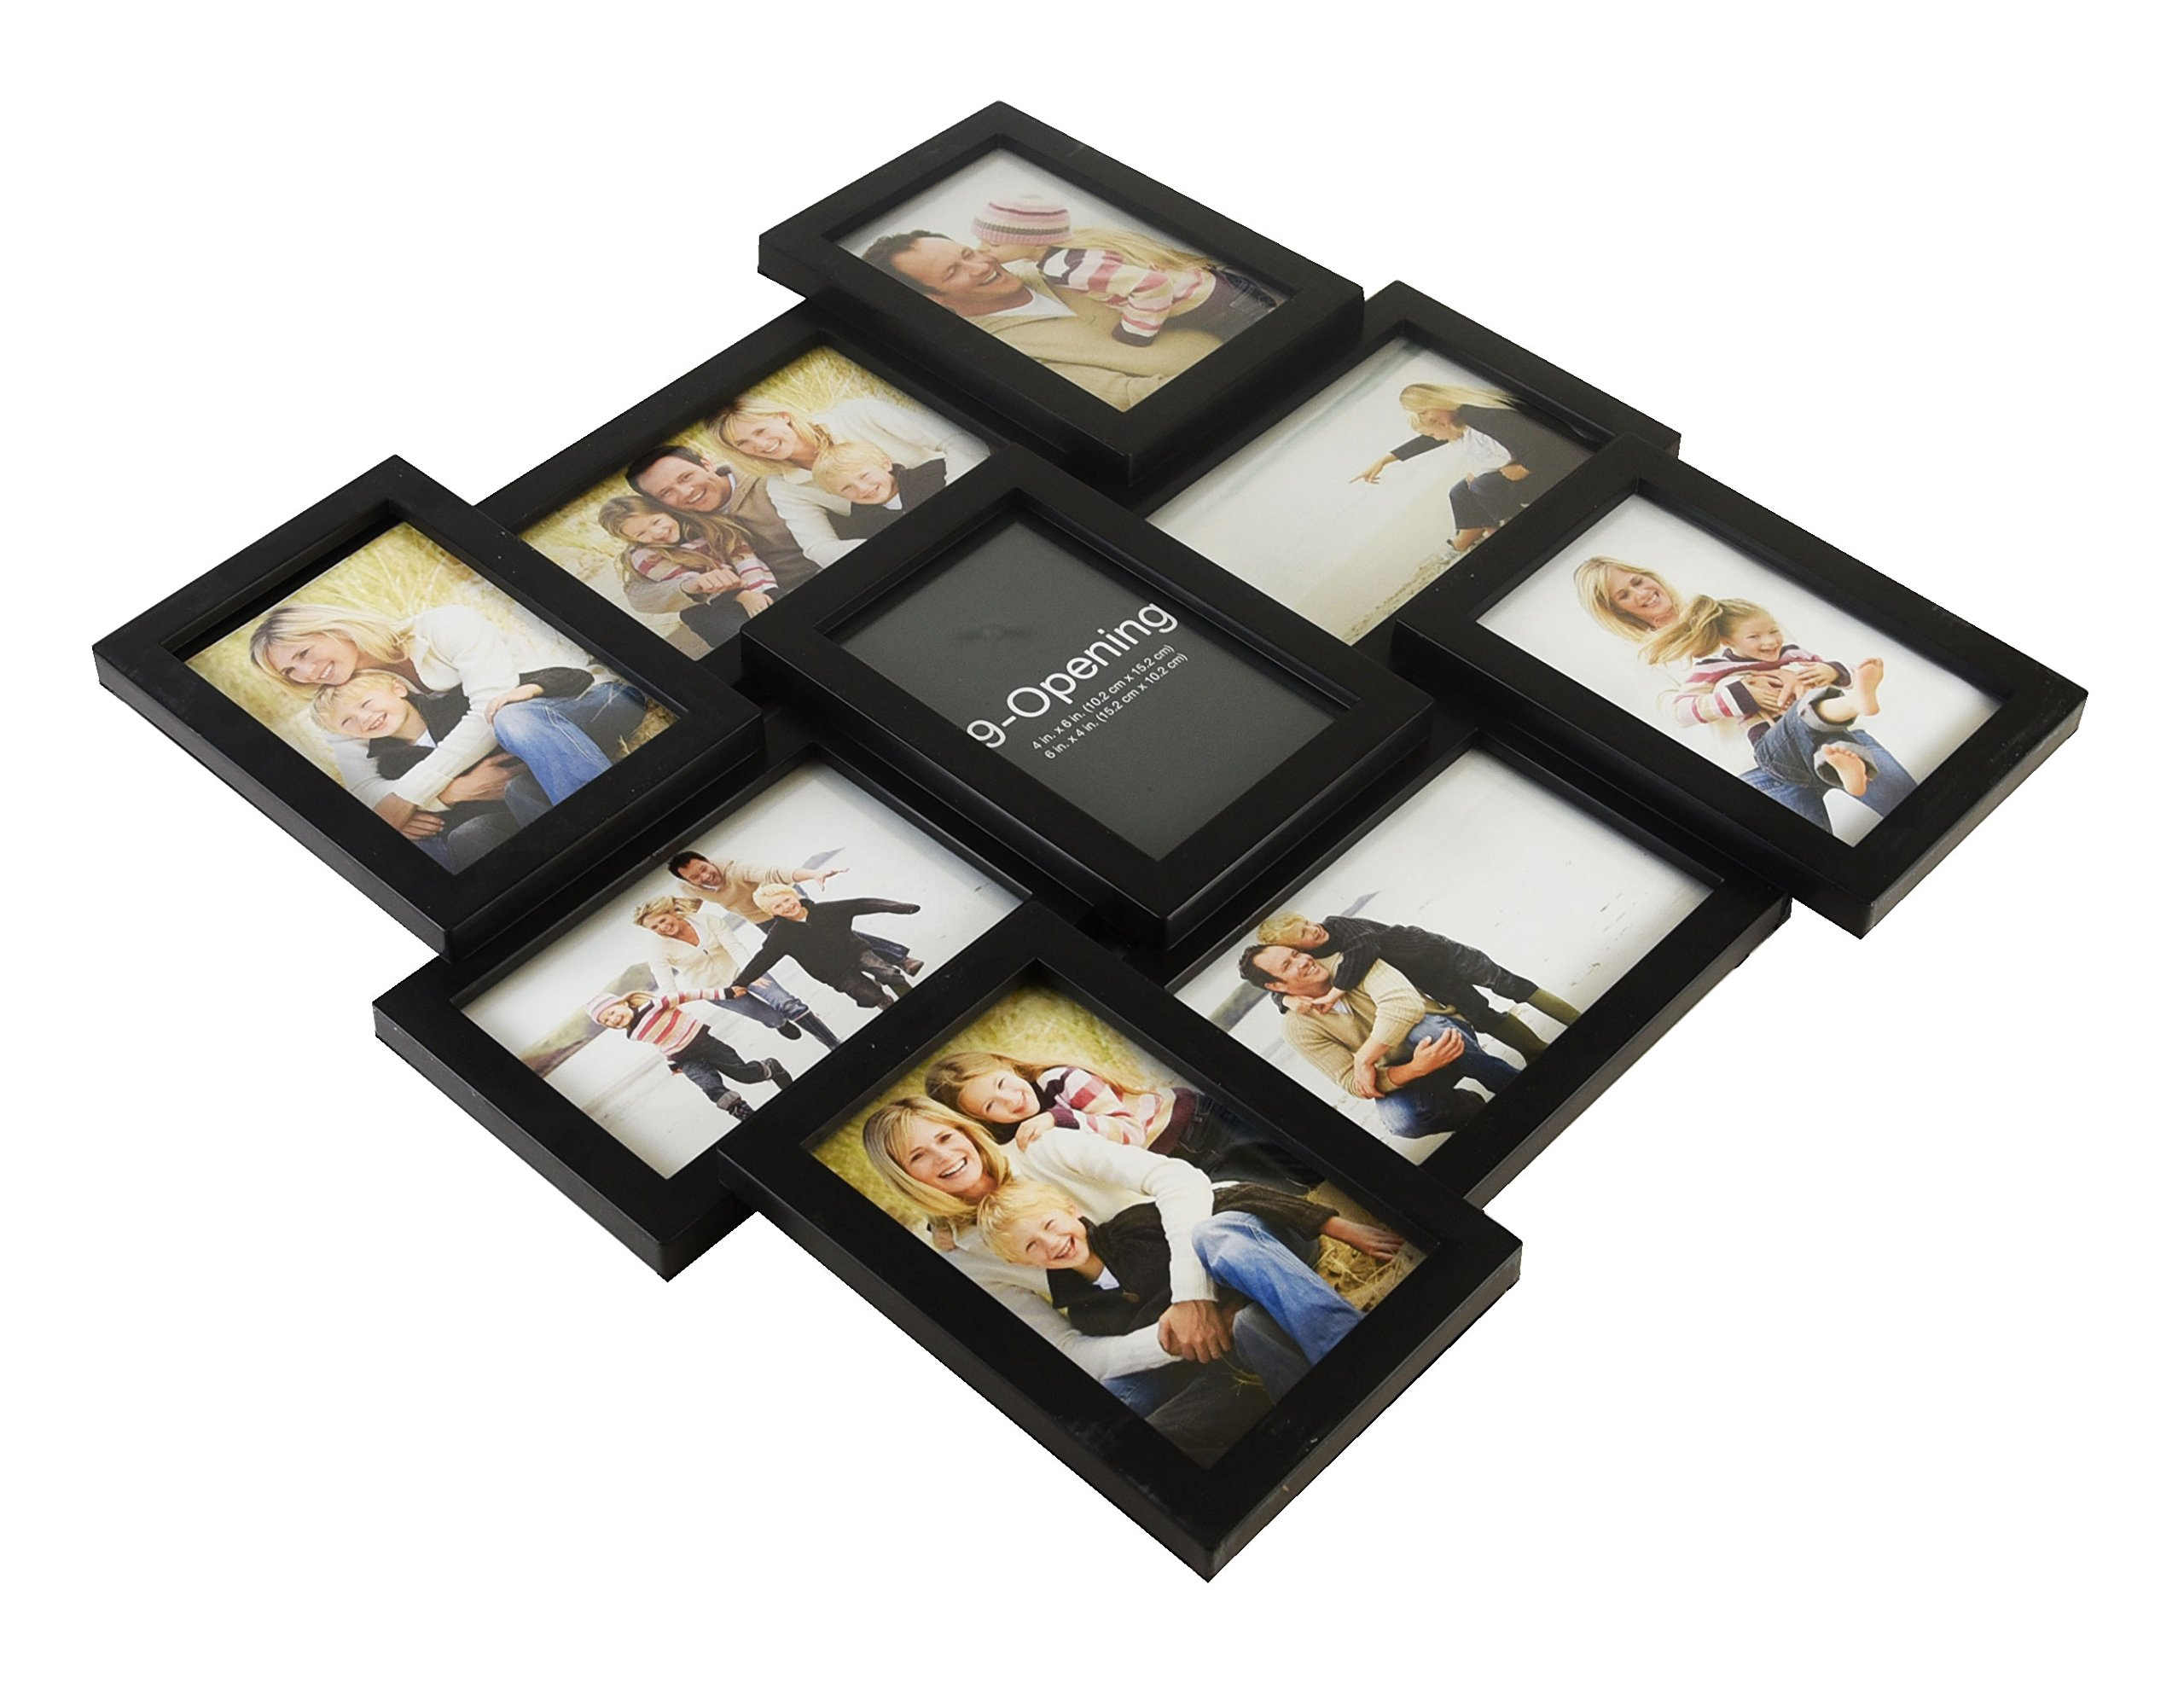 Melannco 9-Opening Puzzle Collage Picture Frame, Black - 51844034 ...